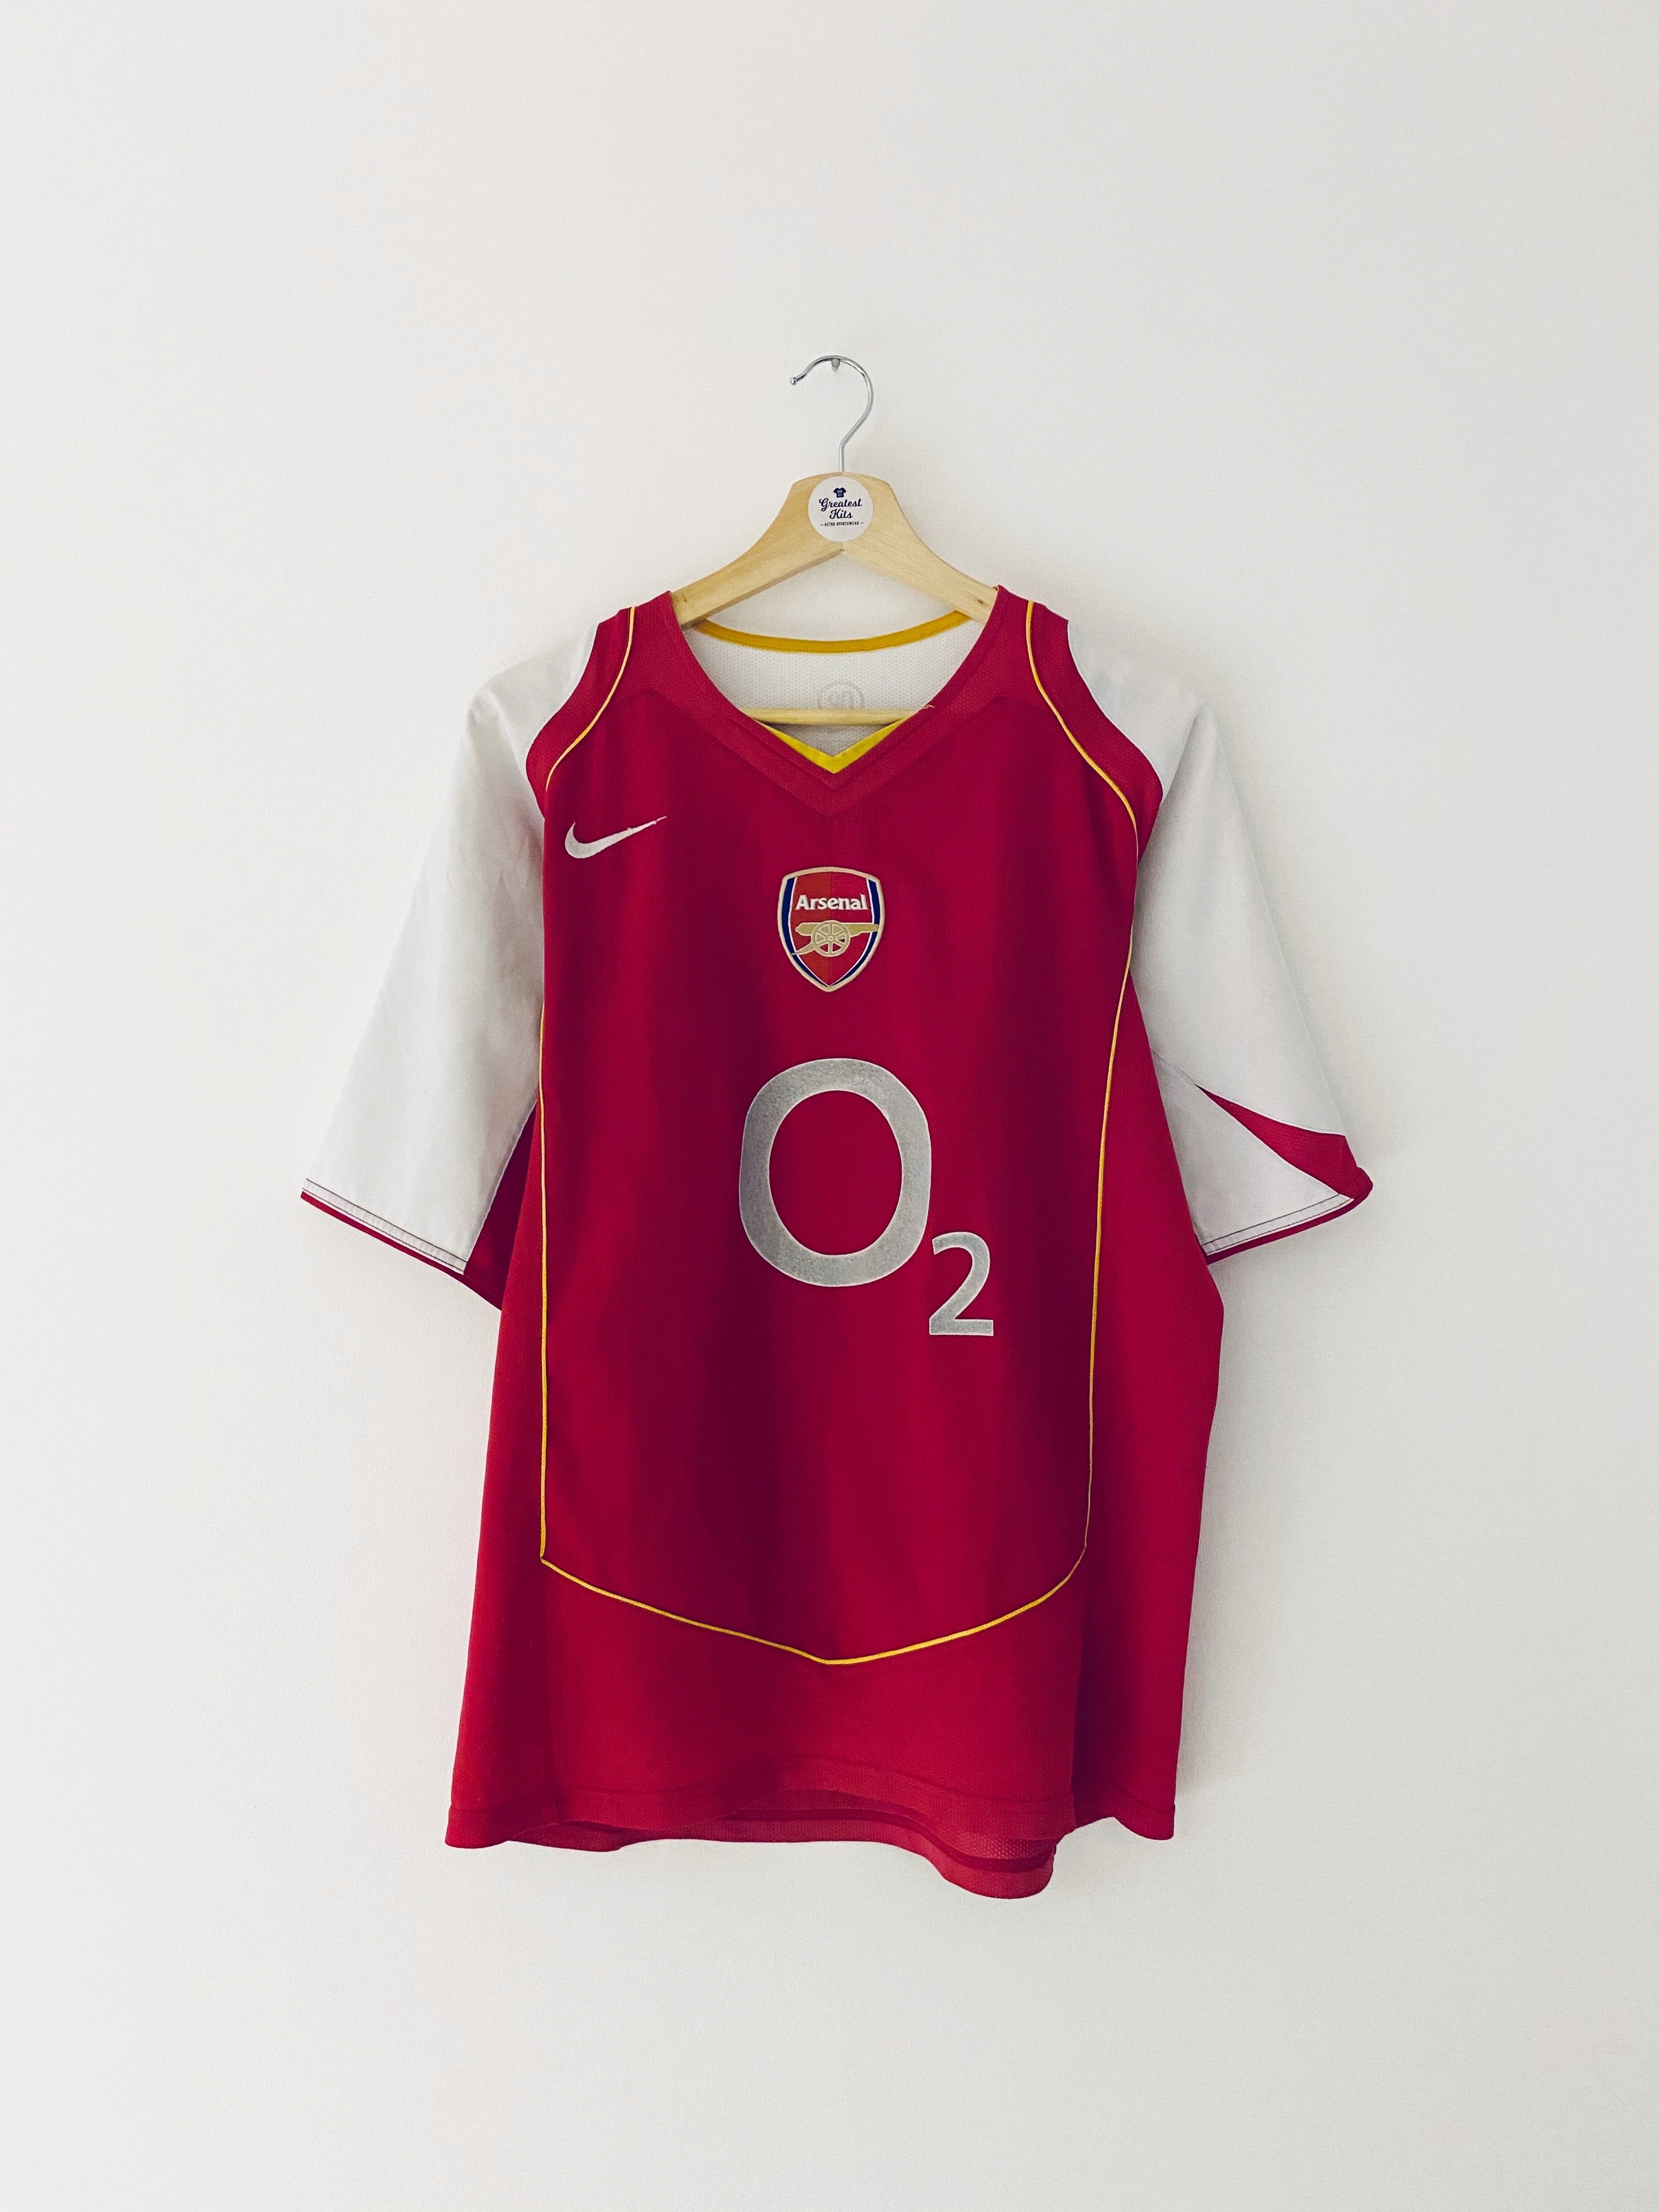 2004/05 Arsenal Home Shirt (L) 7.5/10